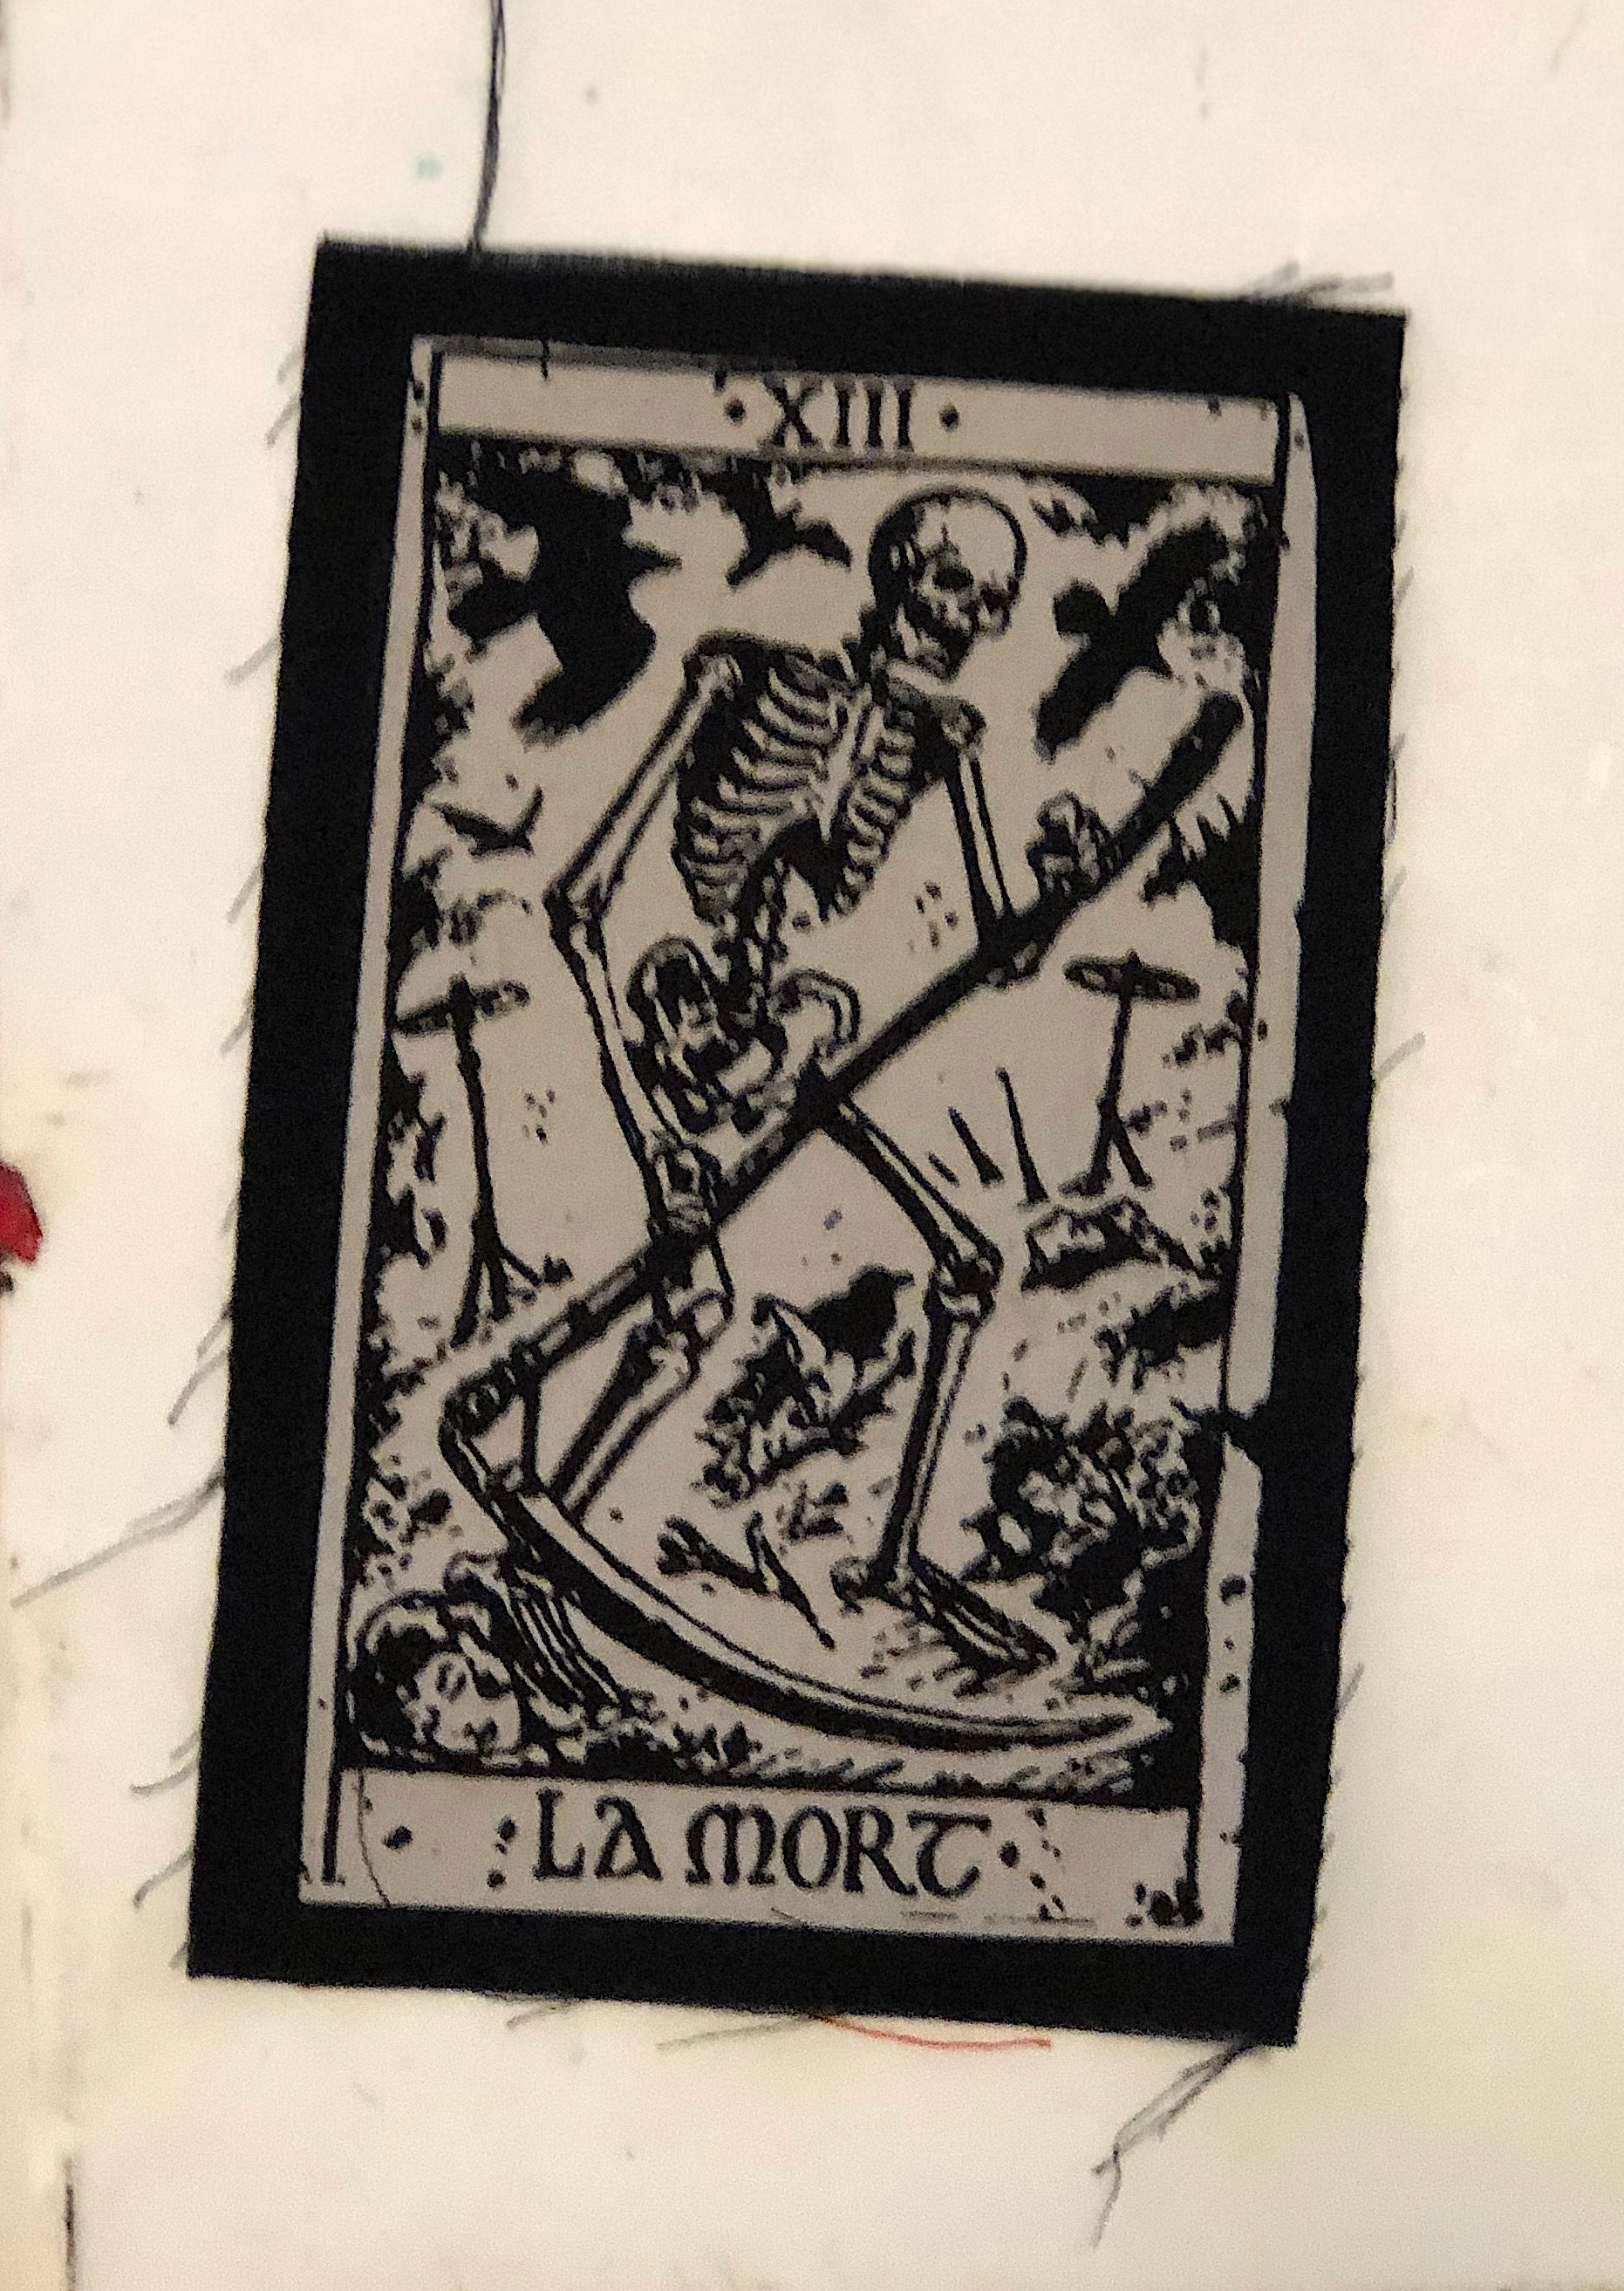 La Mort Patch